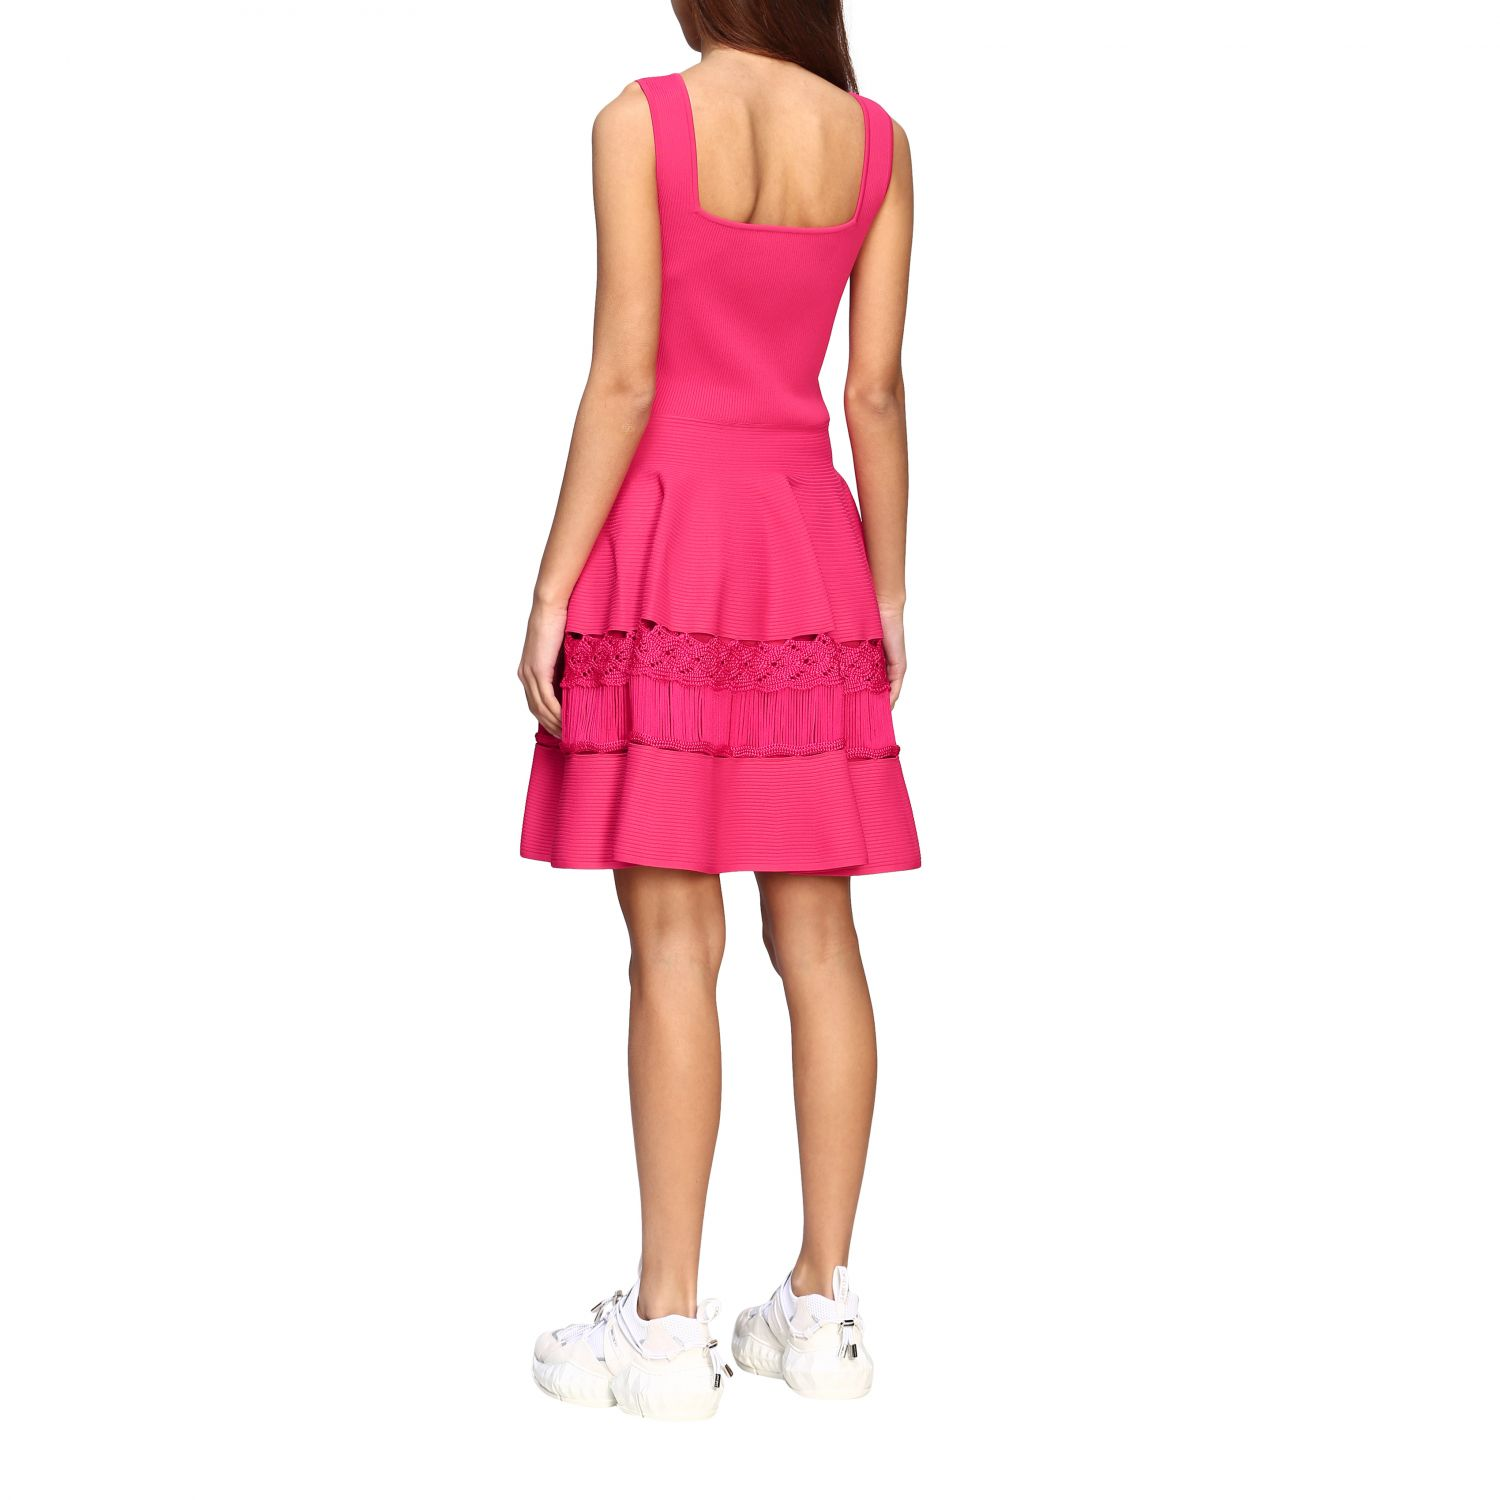 Dress Alexander Mcqueen: Dress women Alexander Mcqueen fuchsia 2